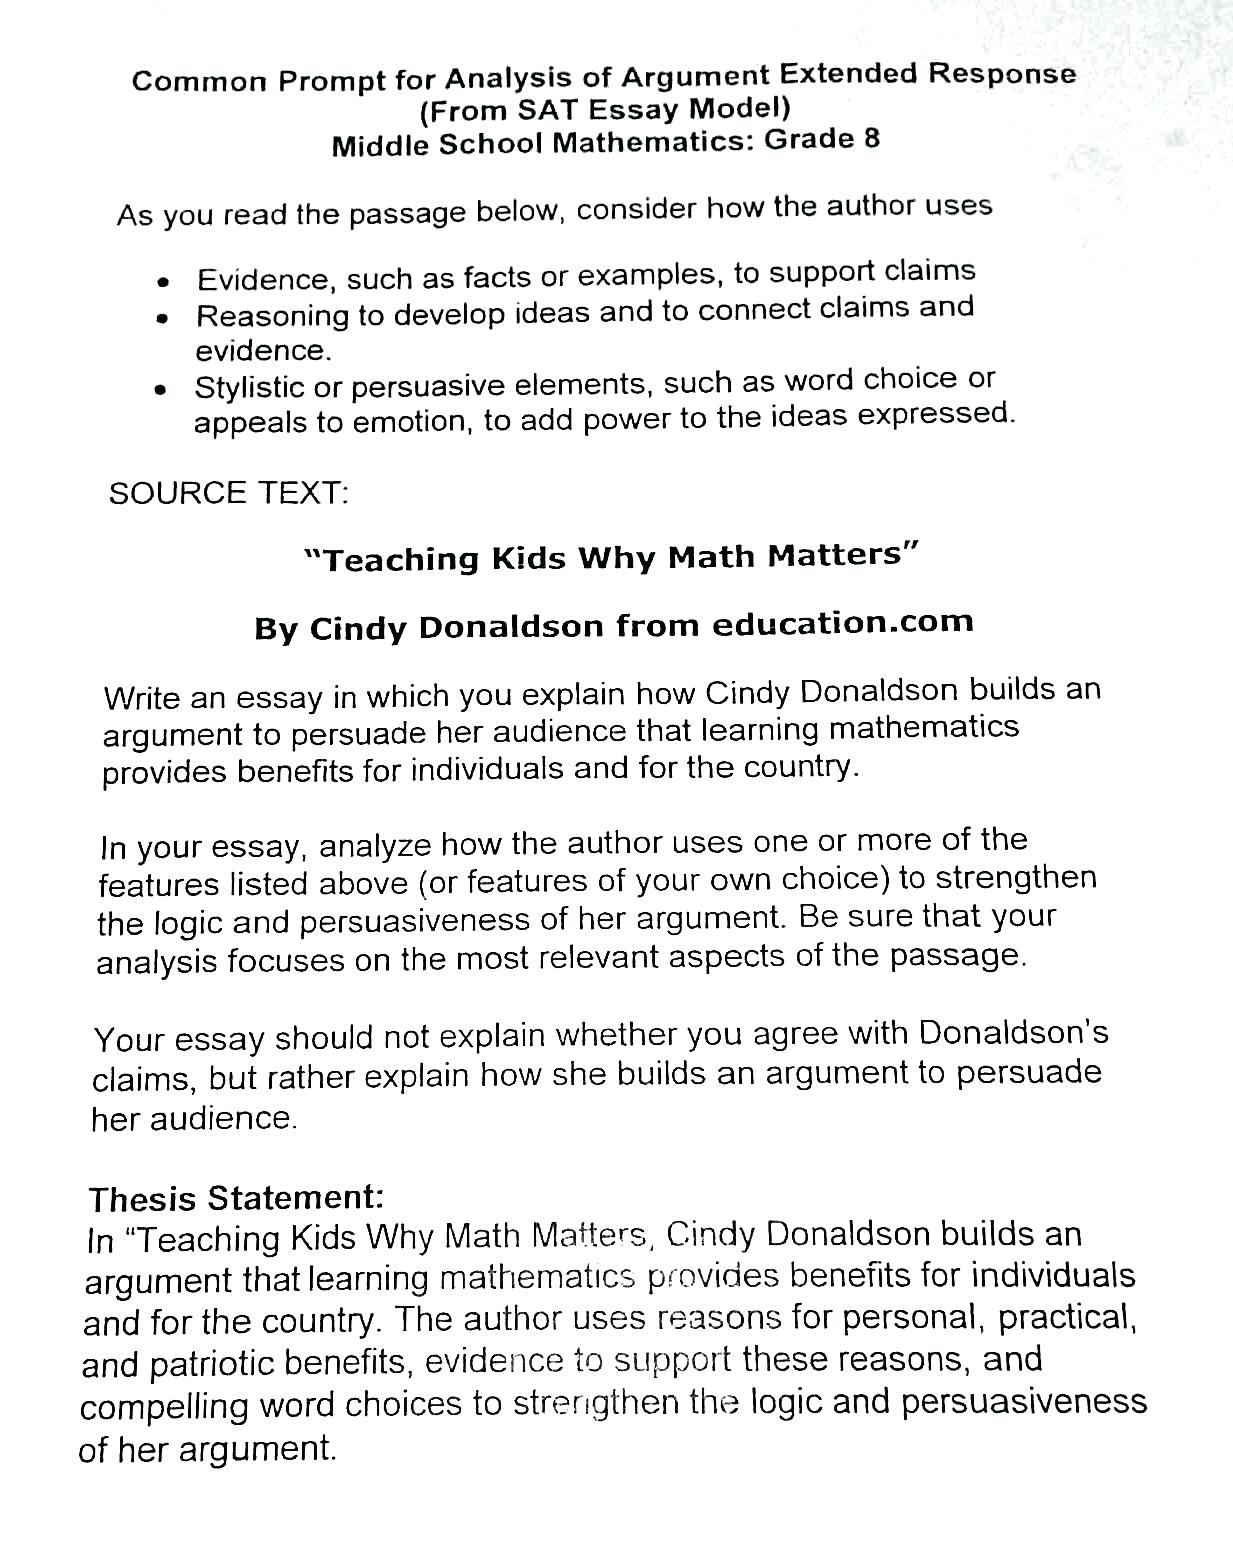 controversial argumentative essay topics example of co   controversial argumentative essay topics example of co shoulderbone us topic  ideas college stude synthesis rogerian argument for middle school proposal